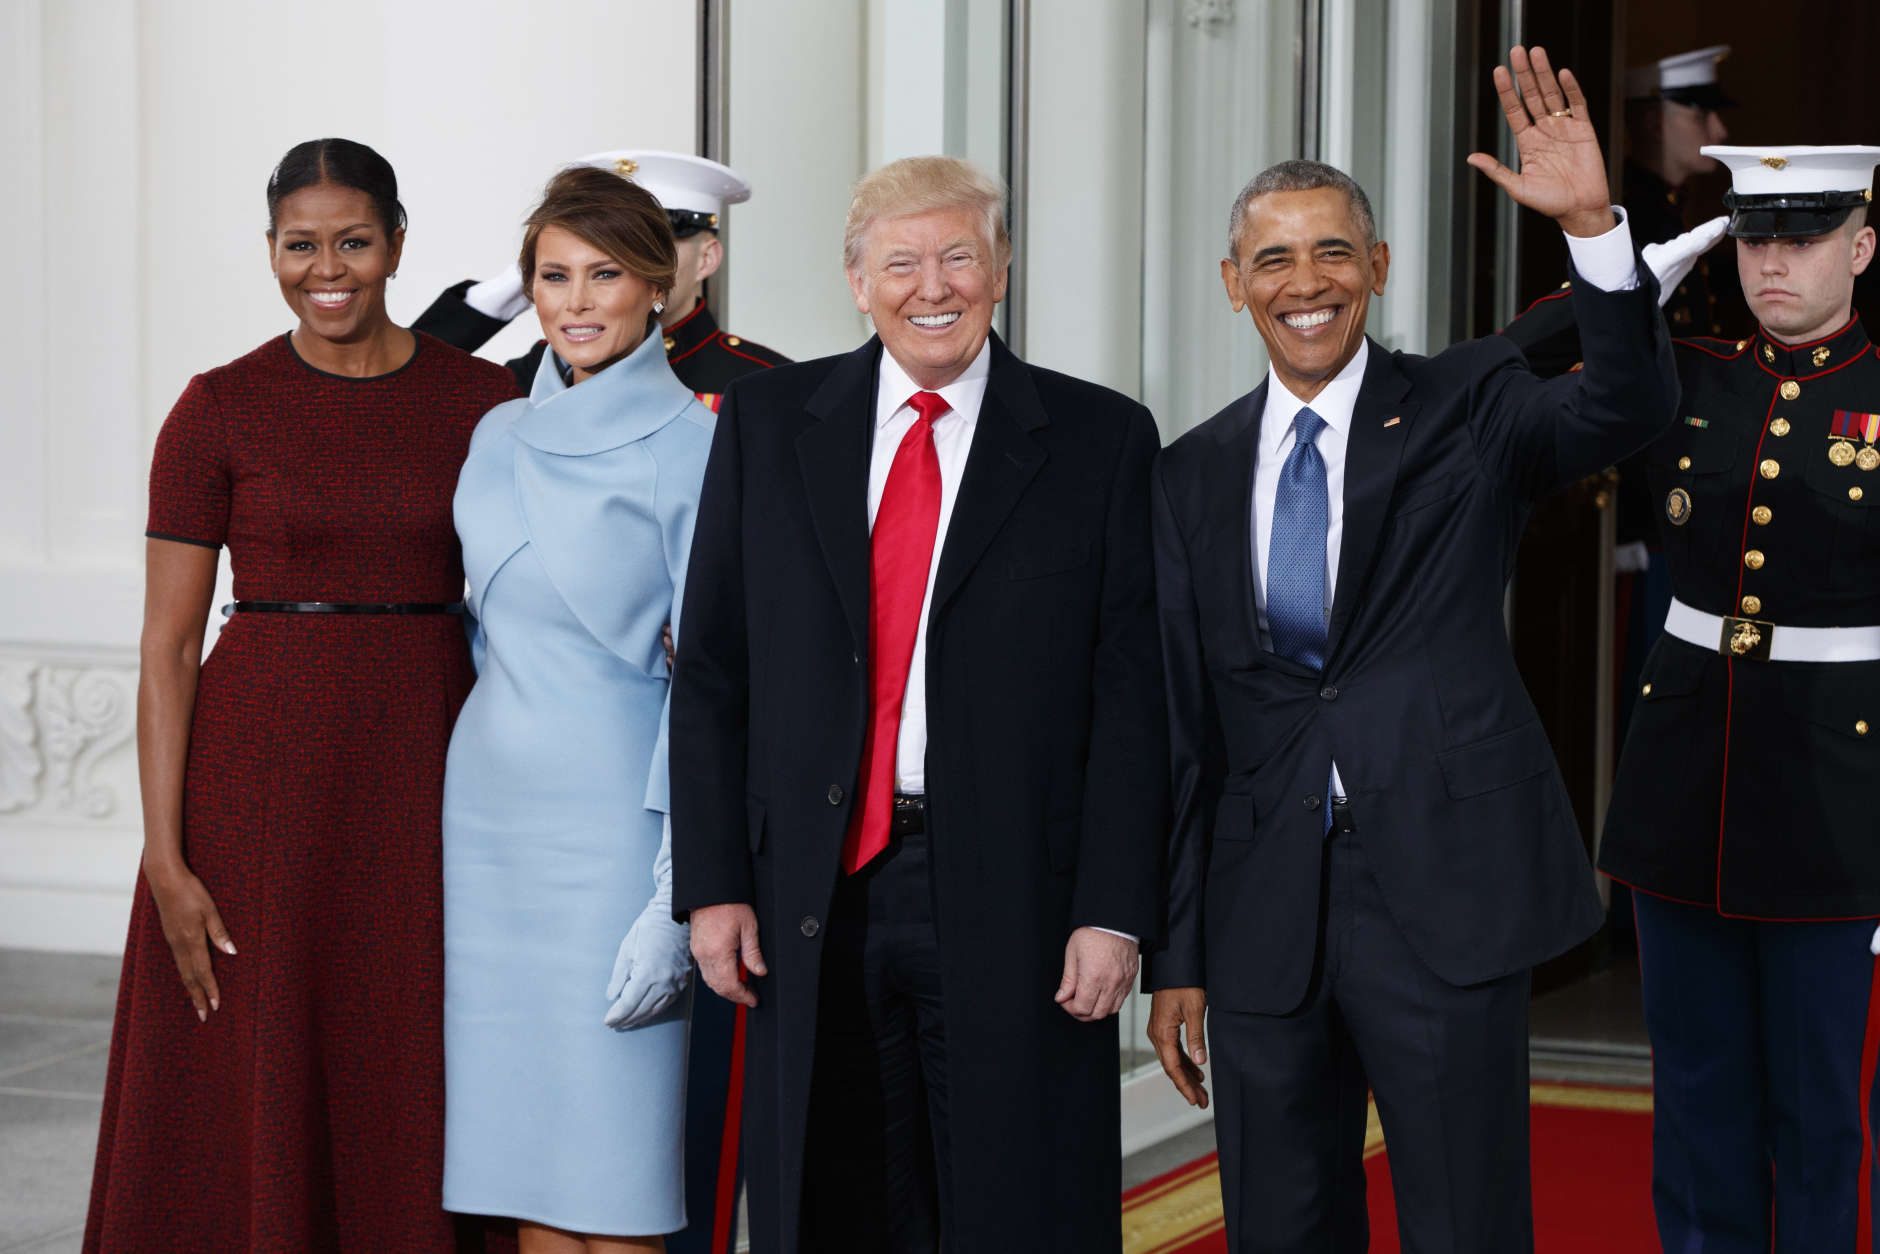 President Barack Obama and first lady Michelle Obama stand with President-elect Donald Trump and his wife Melania Trump at the White House, Friday, Jan. 20, 2017, in Washington. (AP Photo/Evan Vucci)